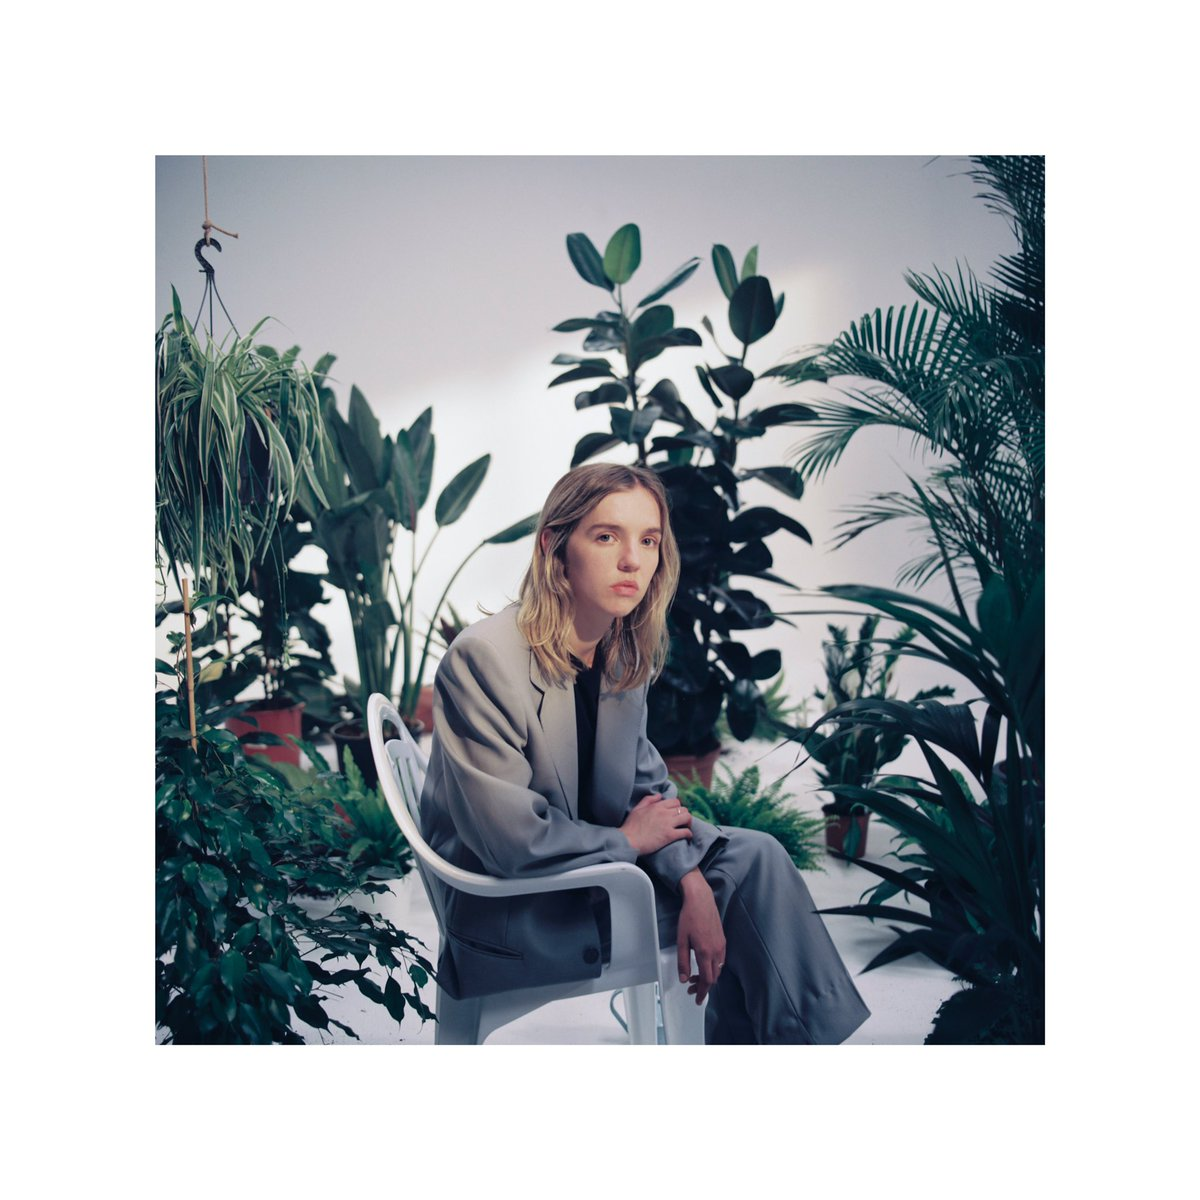 The Japanese House On Twitter Something Has To Change Https T Co Nsauhj8scj